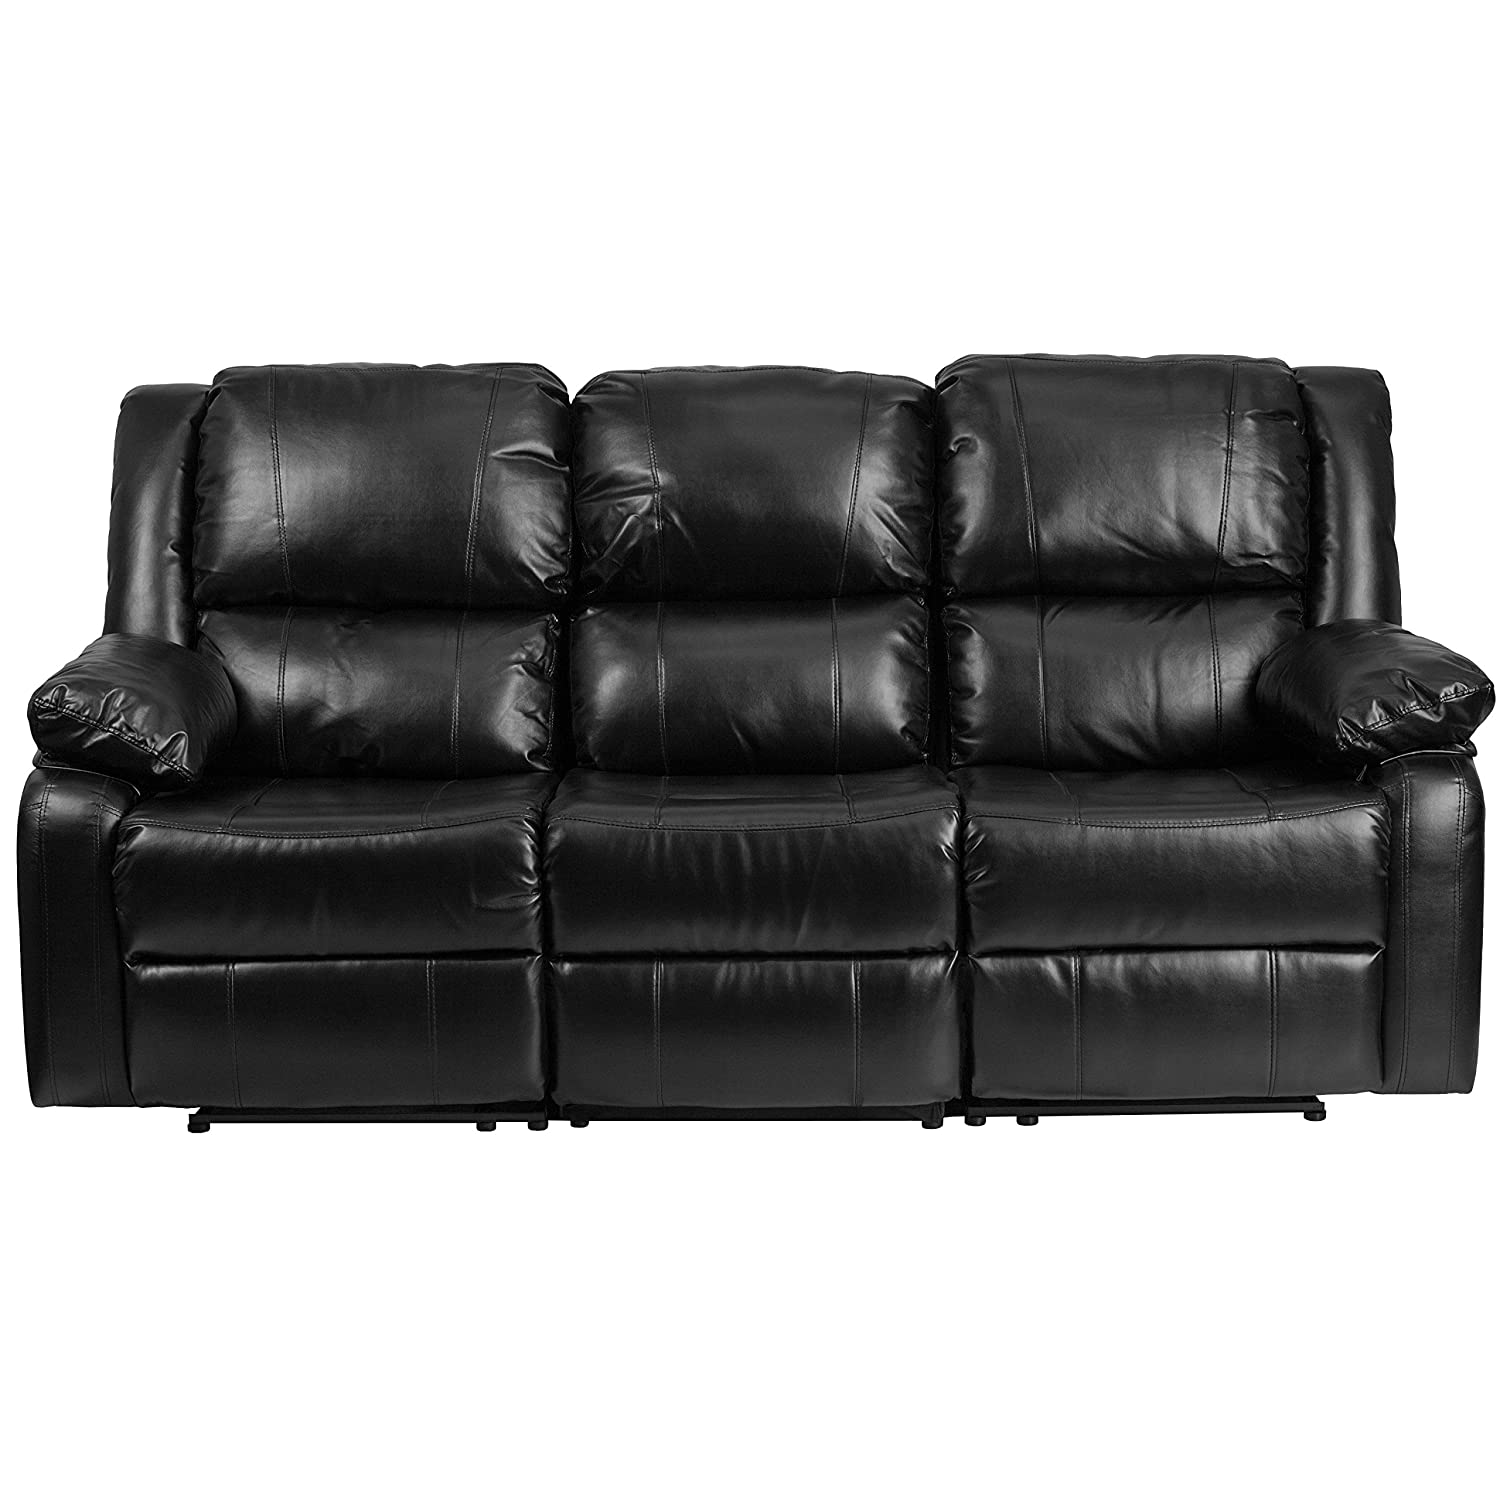 Amazon.com: Flash Furniture Harmony Series Black Leather Sofa With Two  Built In Recliners: Kitchen U0026 Dining